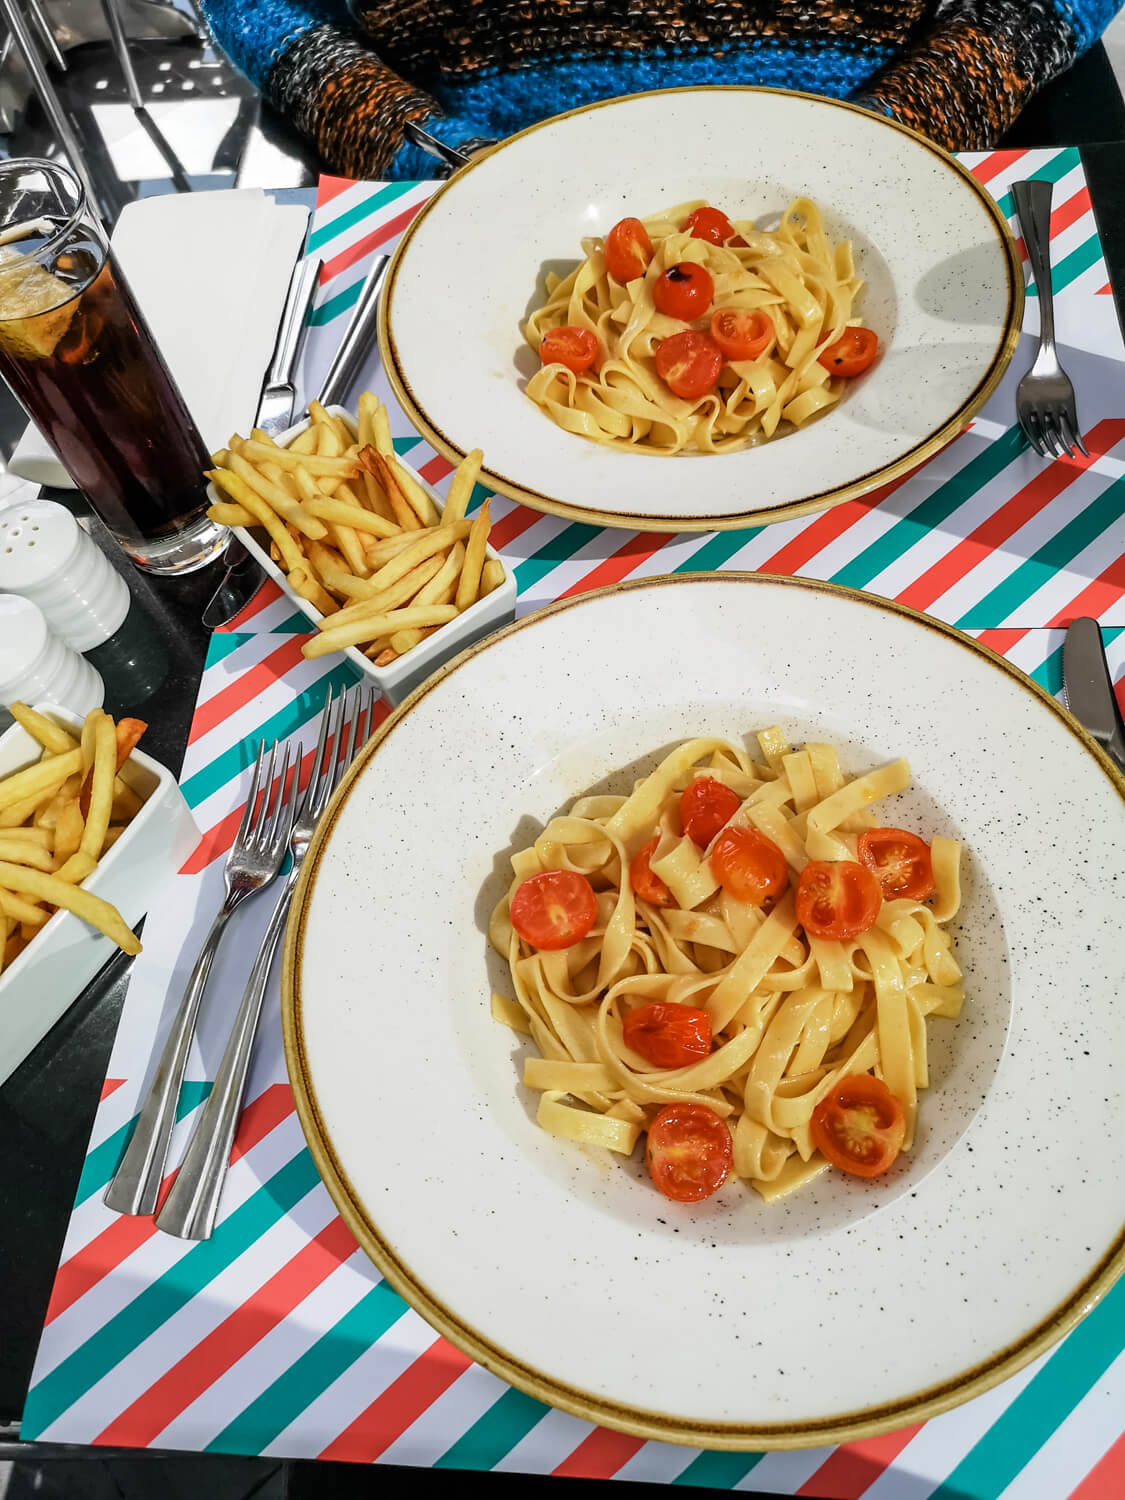 A shot looking down at the table with two dishes of pasta, fries and glasses of coke.